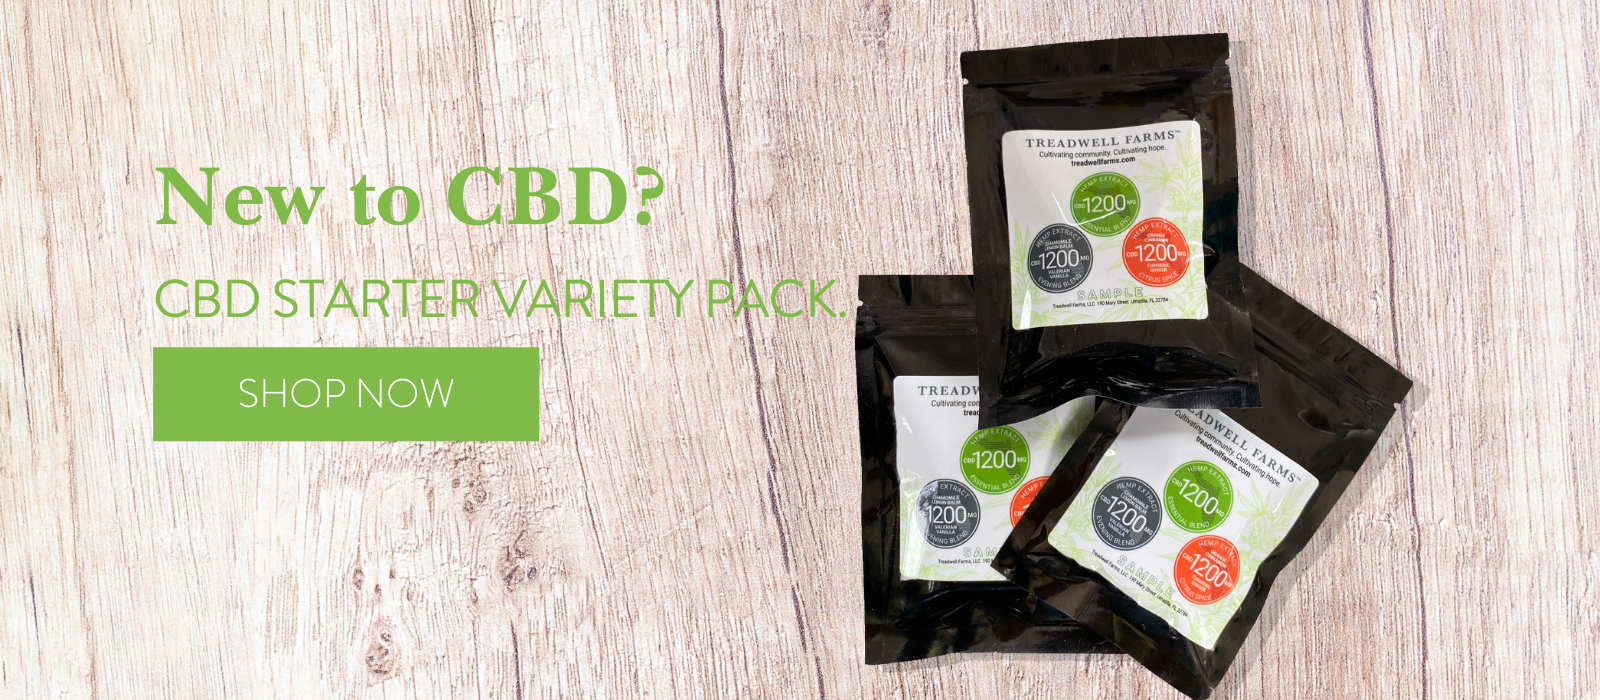 CBD Hemp Starter Variety Pack. A great way to introduce CBD into your daily routine.   Remember: Start Low, Go Slow!